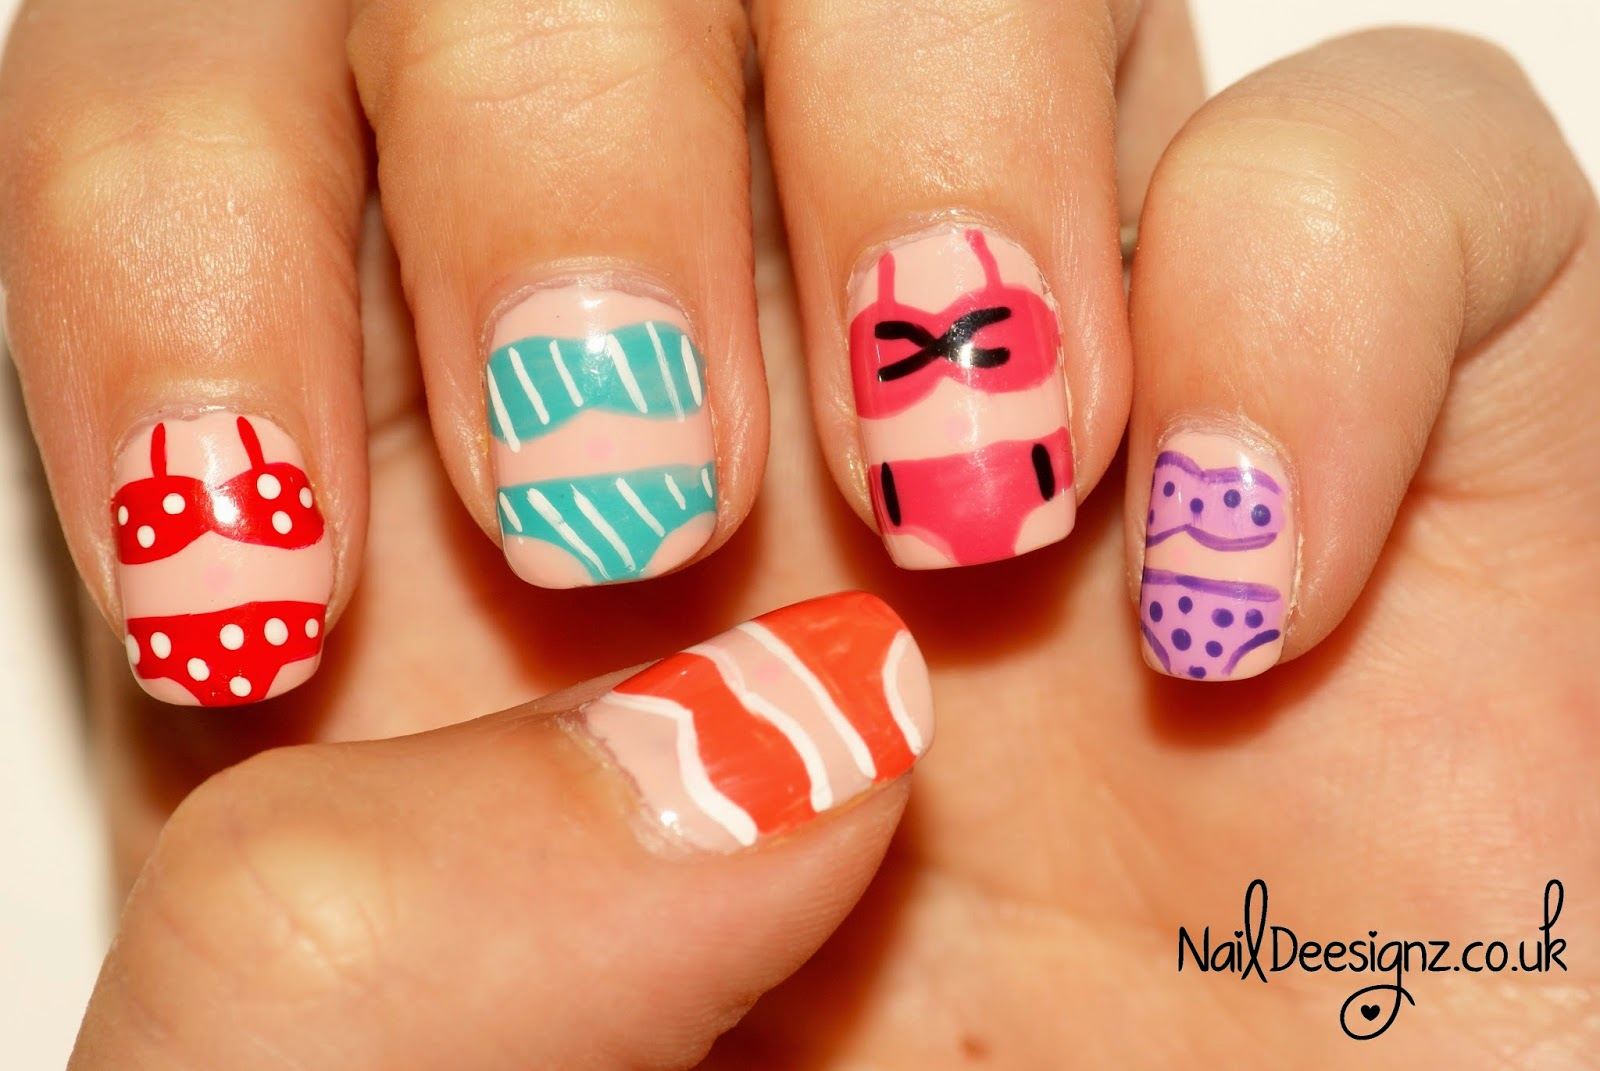 Naildeesignz bikini nail art you can really mix and match this design by doing all different colour bikinis and also halterneck bandeau or even a swimming costume prinsesfo Choice Image